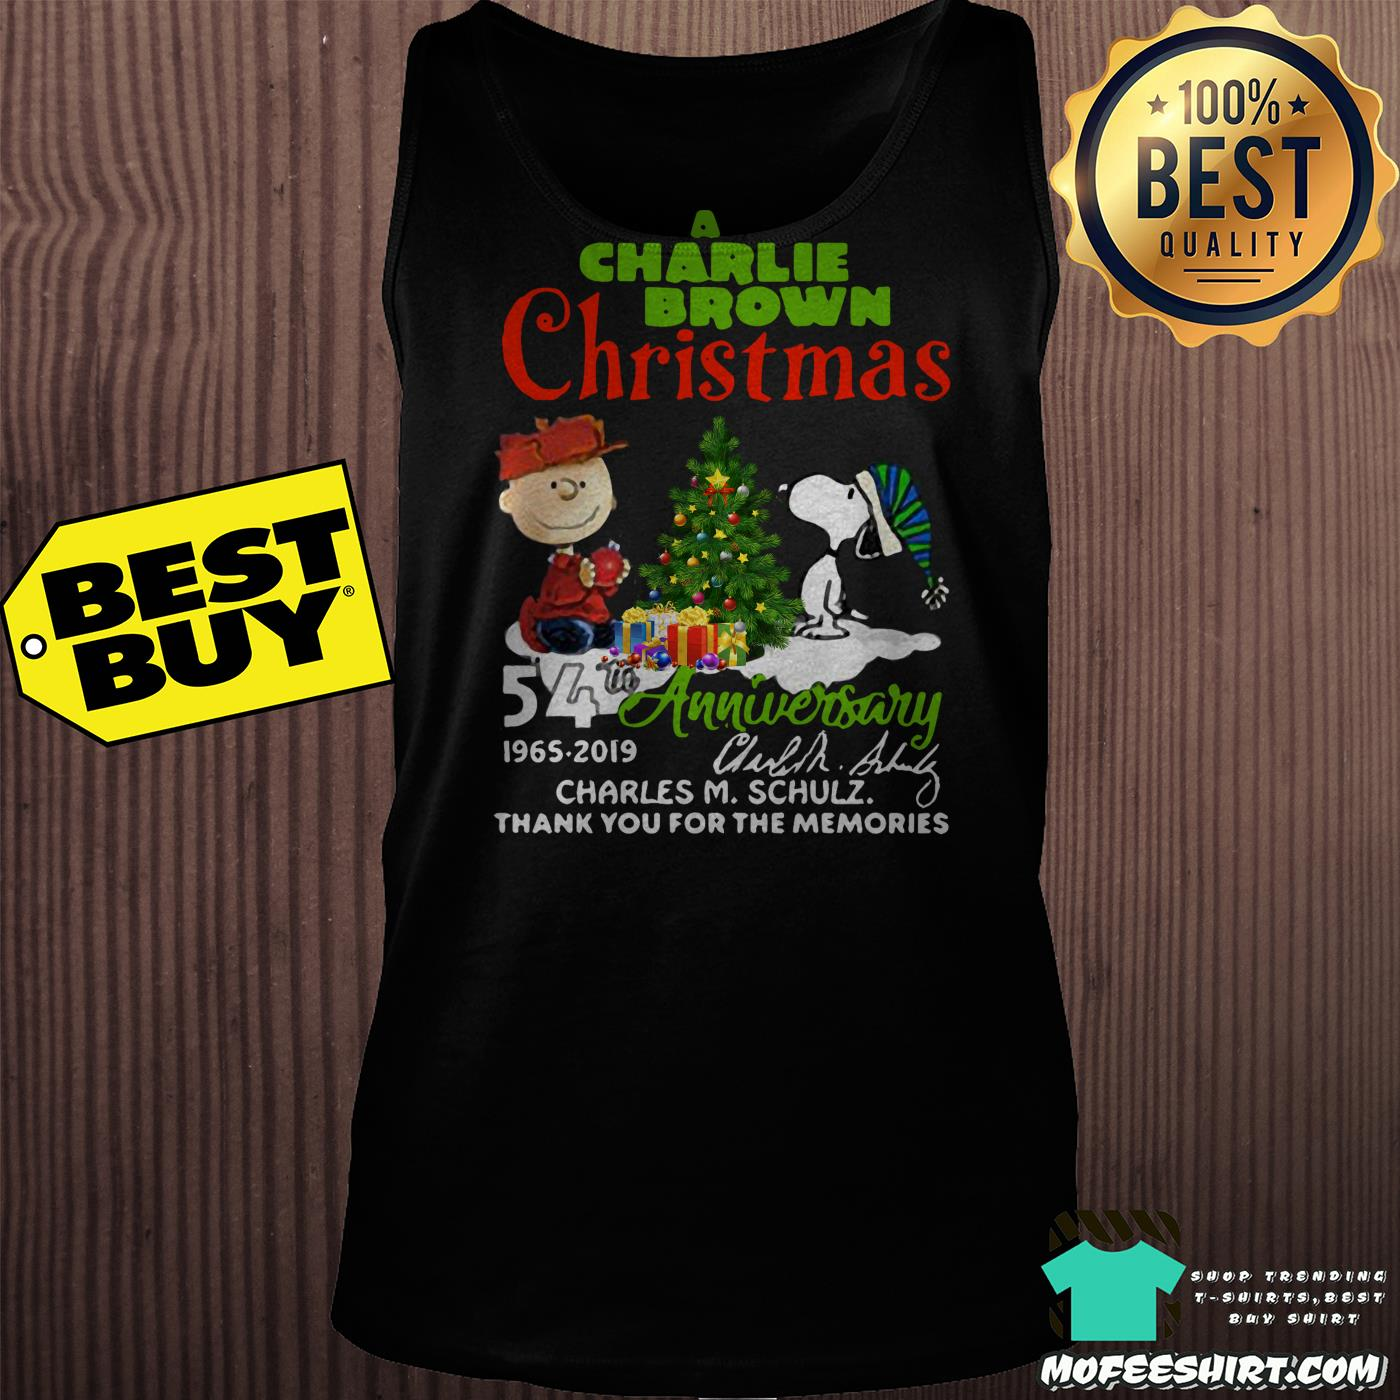 a charlie brown christmas 54th anniversary 1965 2019 signature tank top - A Charlie Brown Christmas 54th Anniversary 1965-2019 Signature Shirt